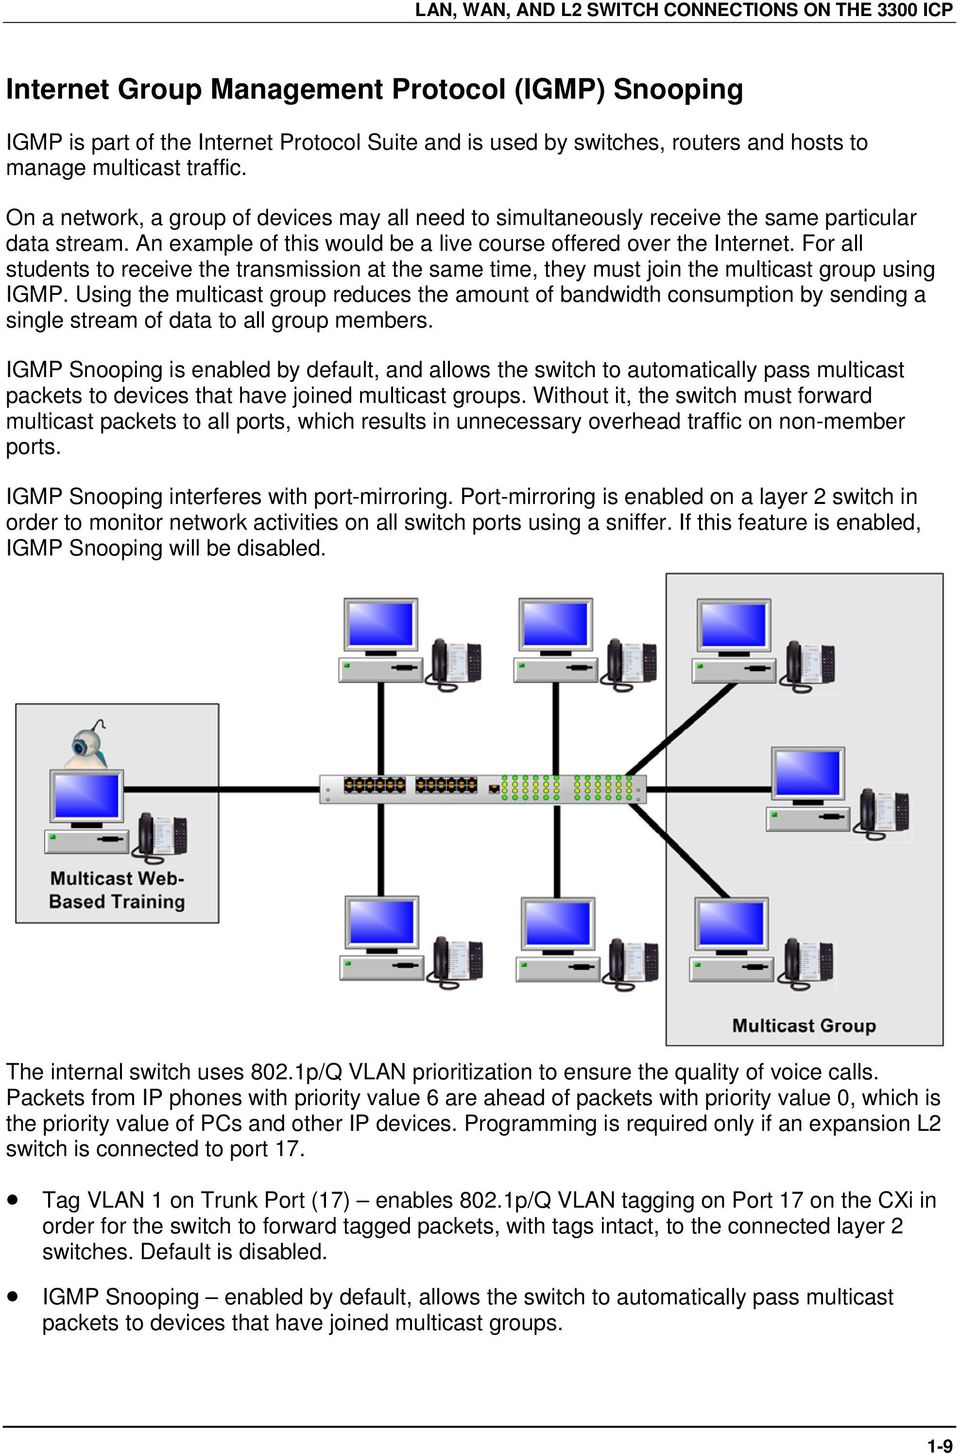 For all students to receive the transmission at the same time, they must join the multicast group using IGMP.